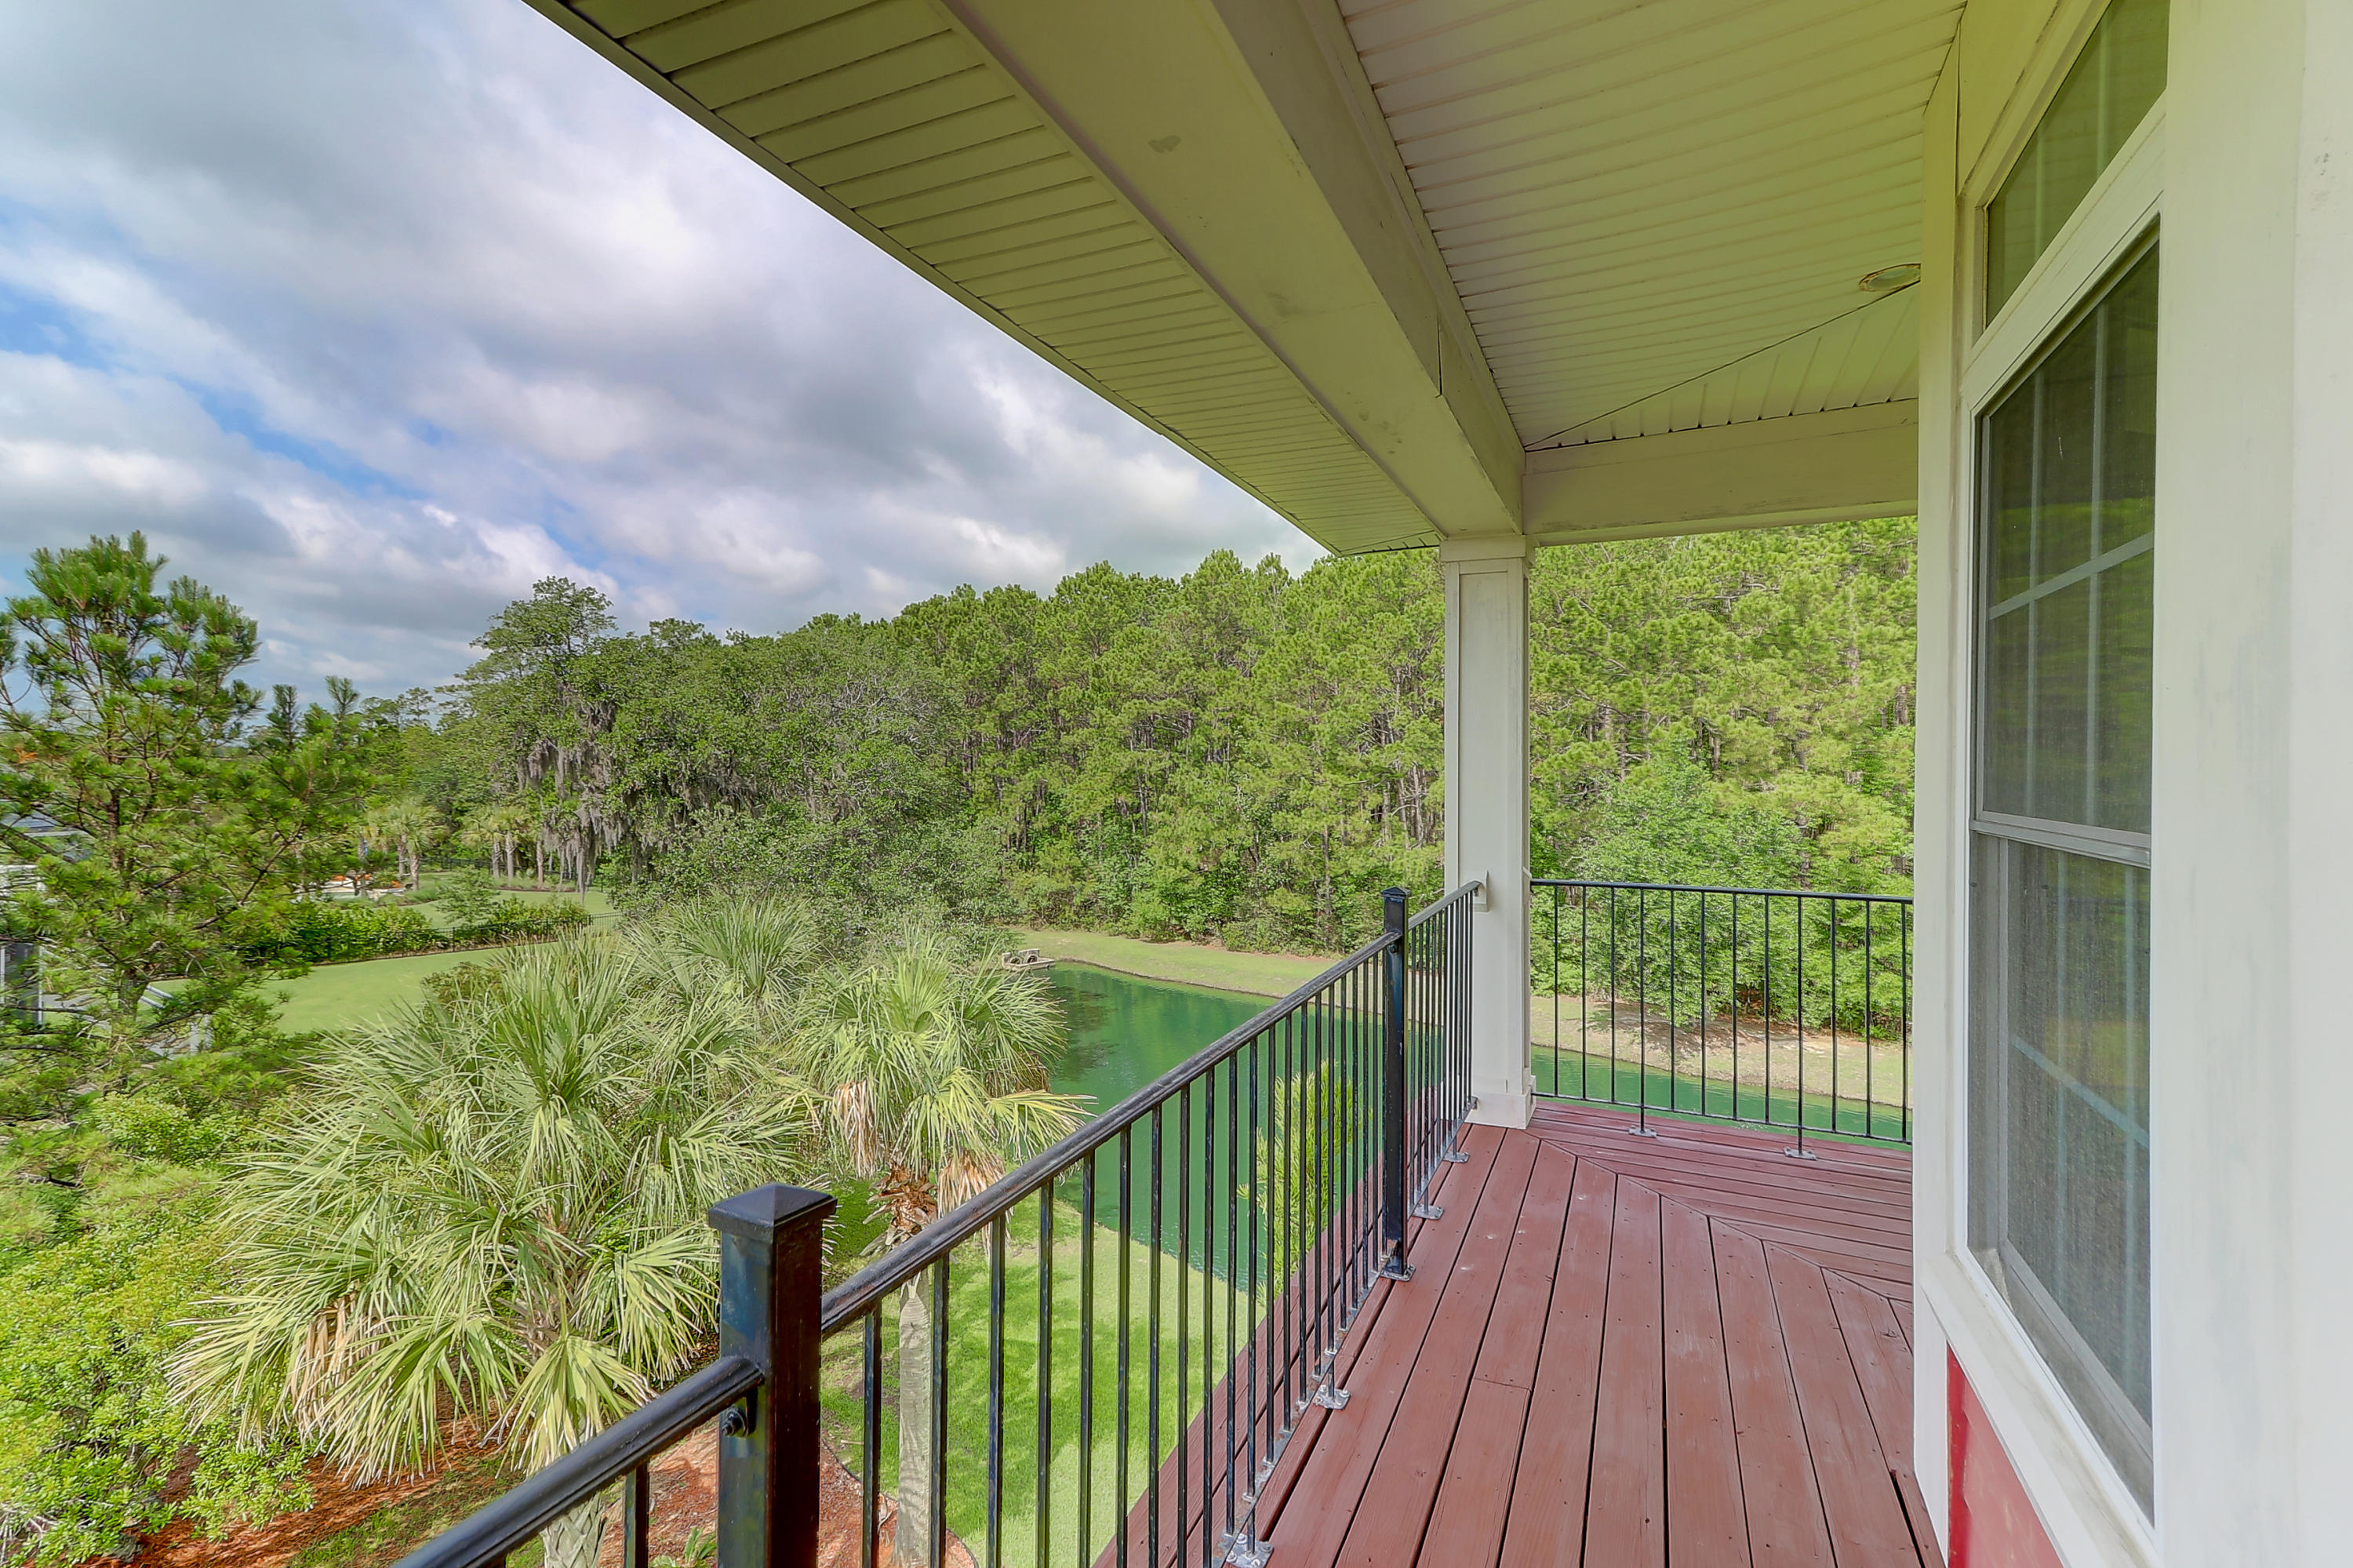 Beresford Creek Landing Homes For Sale - 1101 Beresford Run, Charleston, SC - 8